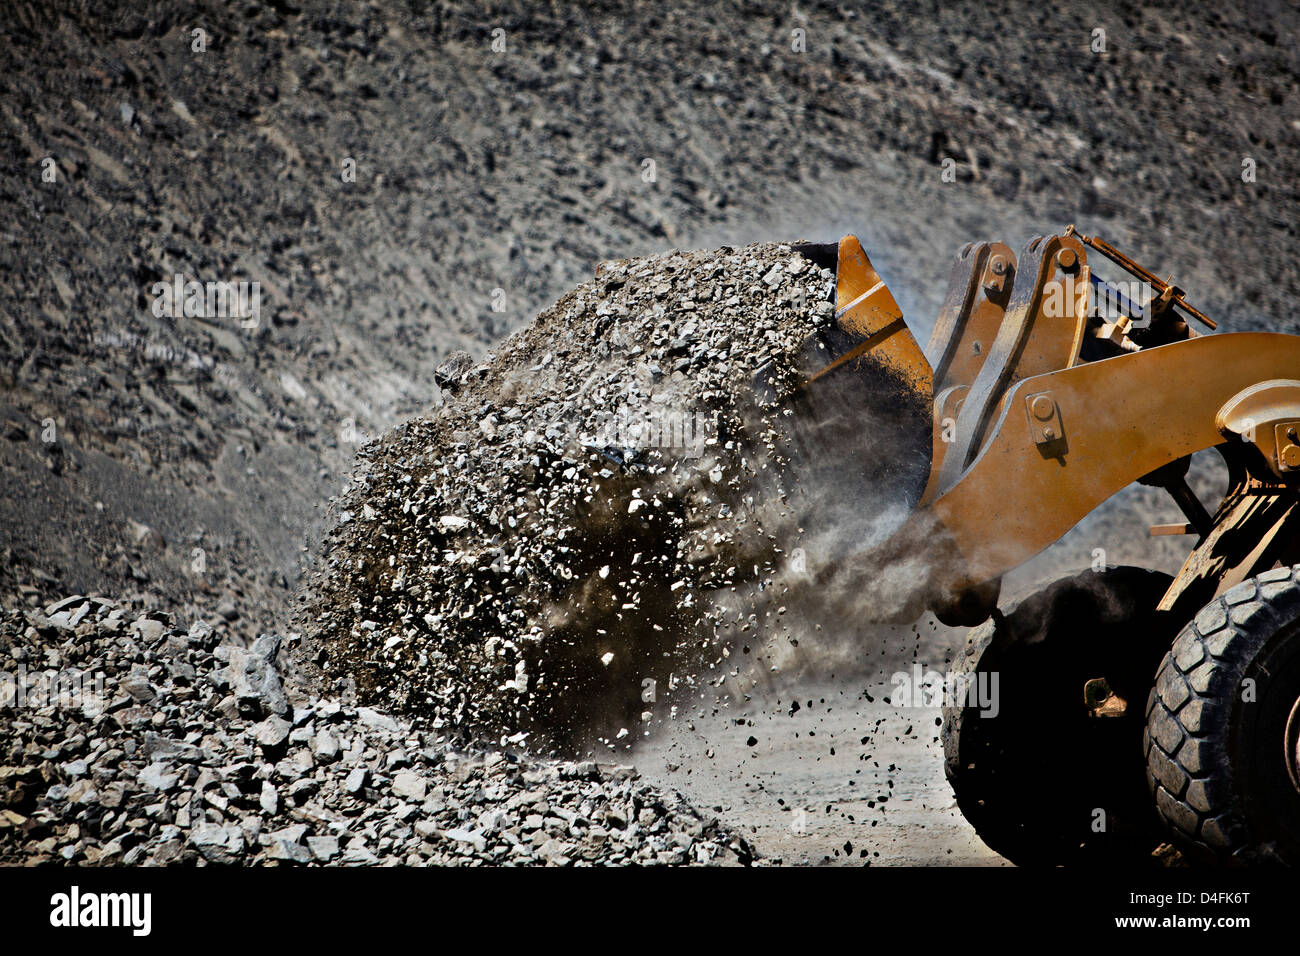 Digger working in quarry - Stock Image